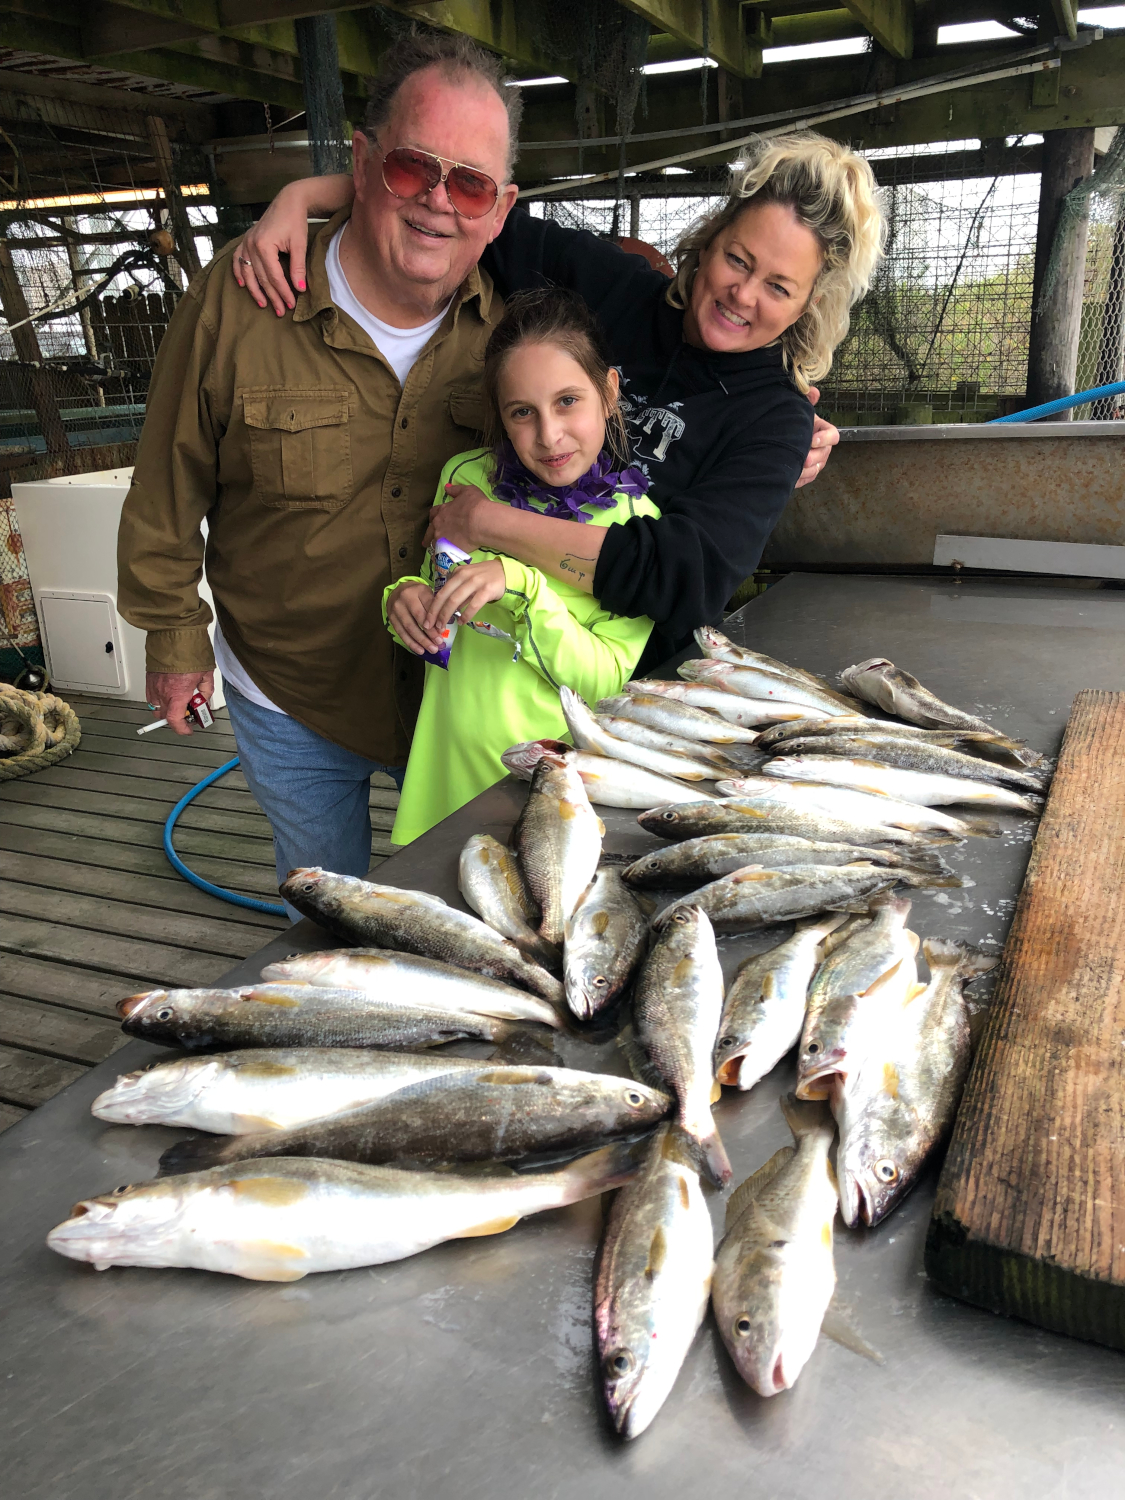 Freeport & Surfside Offshore, Deep Sea & Bay Fishing for: Red Snapper, Kingfish, Amberjack, Cobia, Dolphin, Wahoo, Tuna, Shark, Redfish, Flounder, Trout